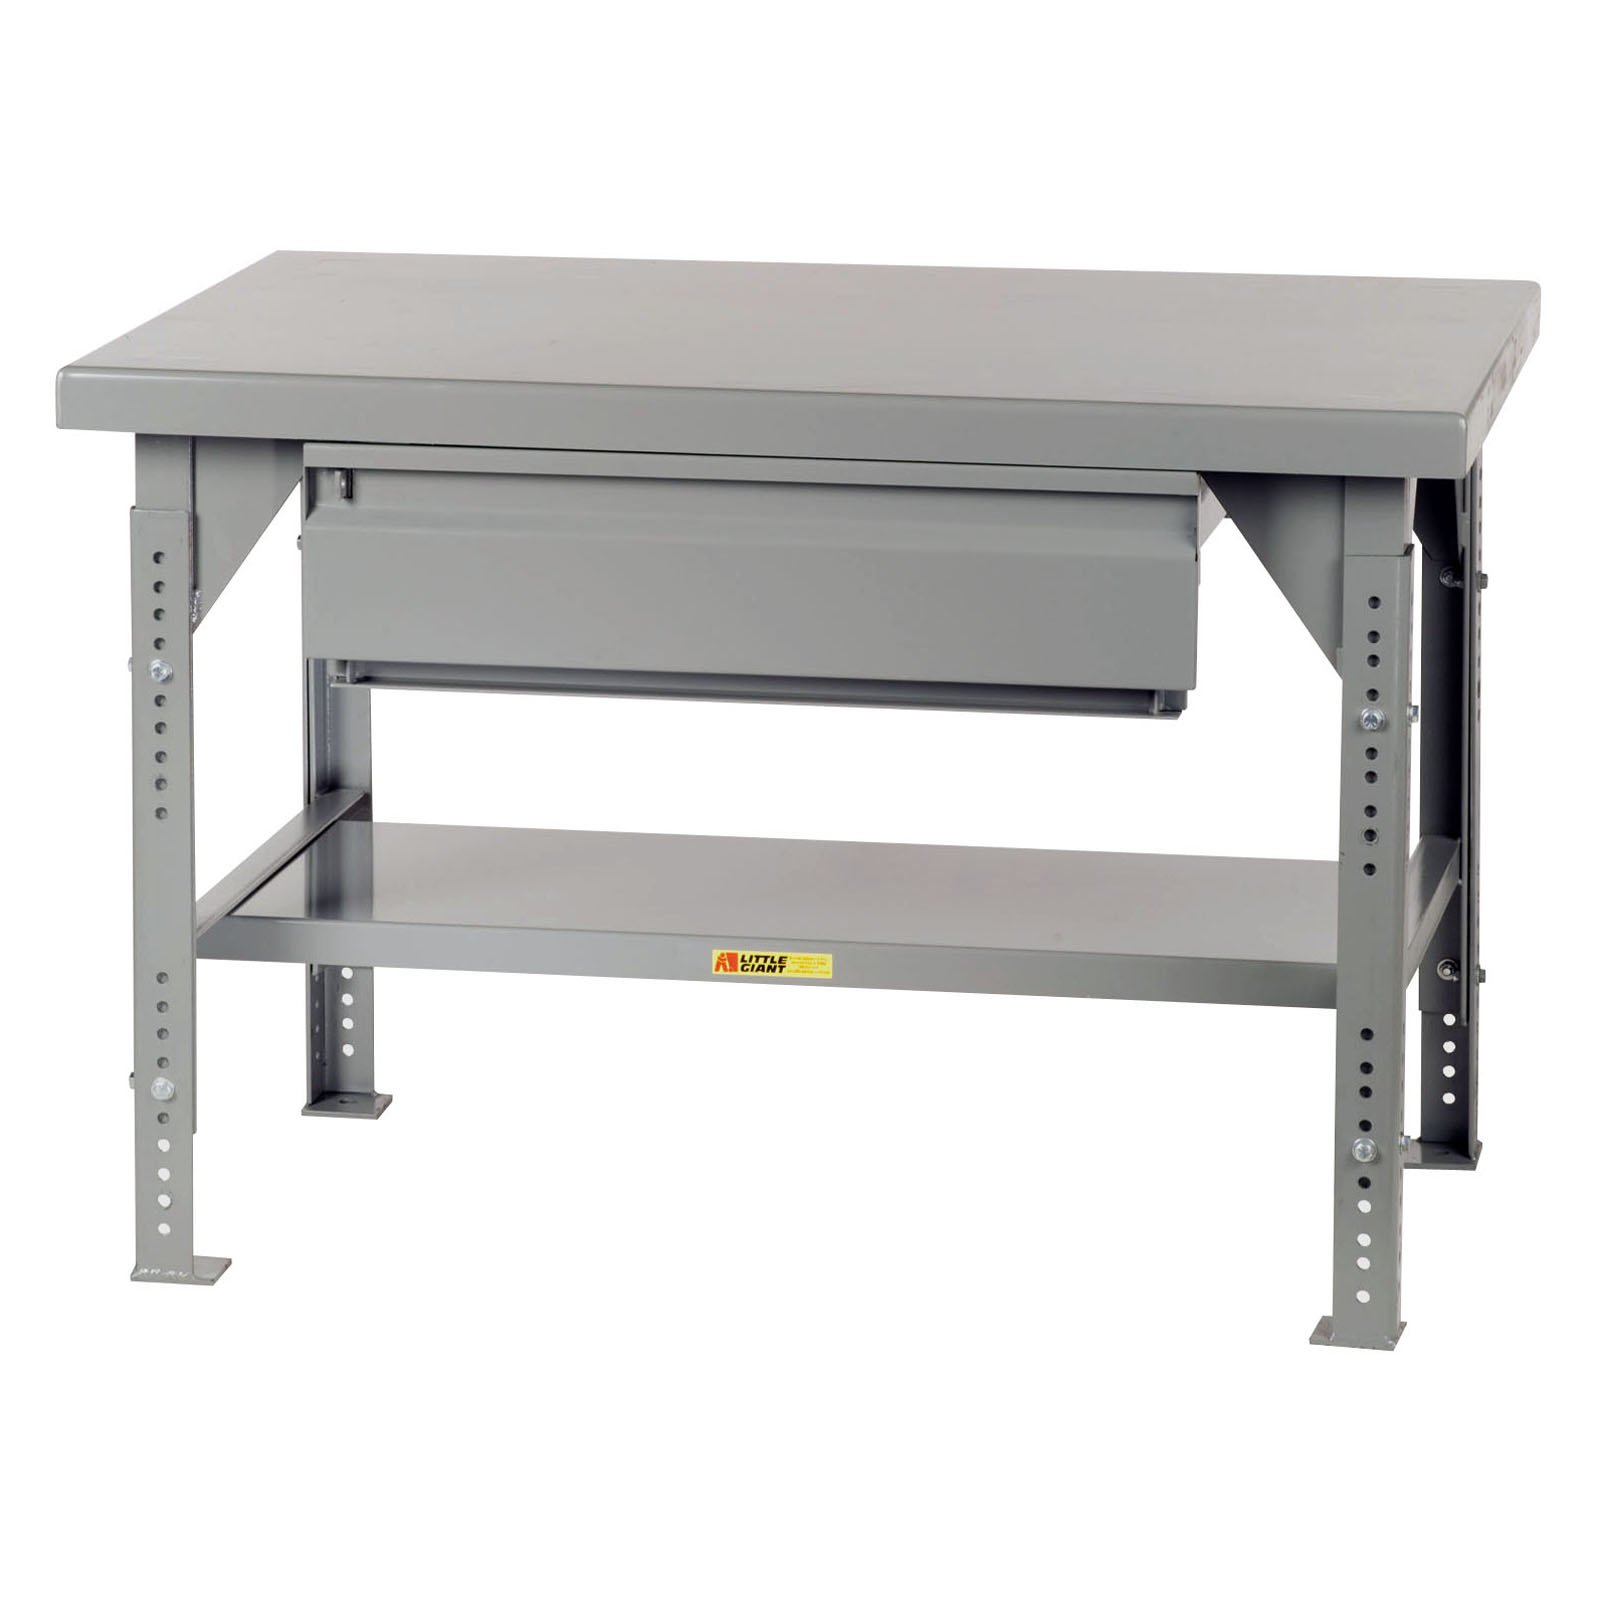 Little Giant Heavy-Duty Workbench with Drawer Adjustable 42 x 84 in. by Brennan Equipment and Manufacturing Inc